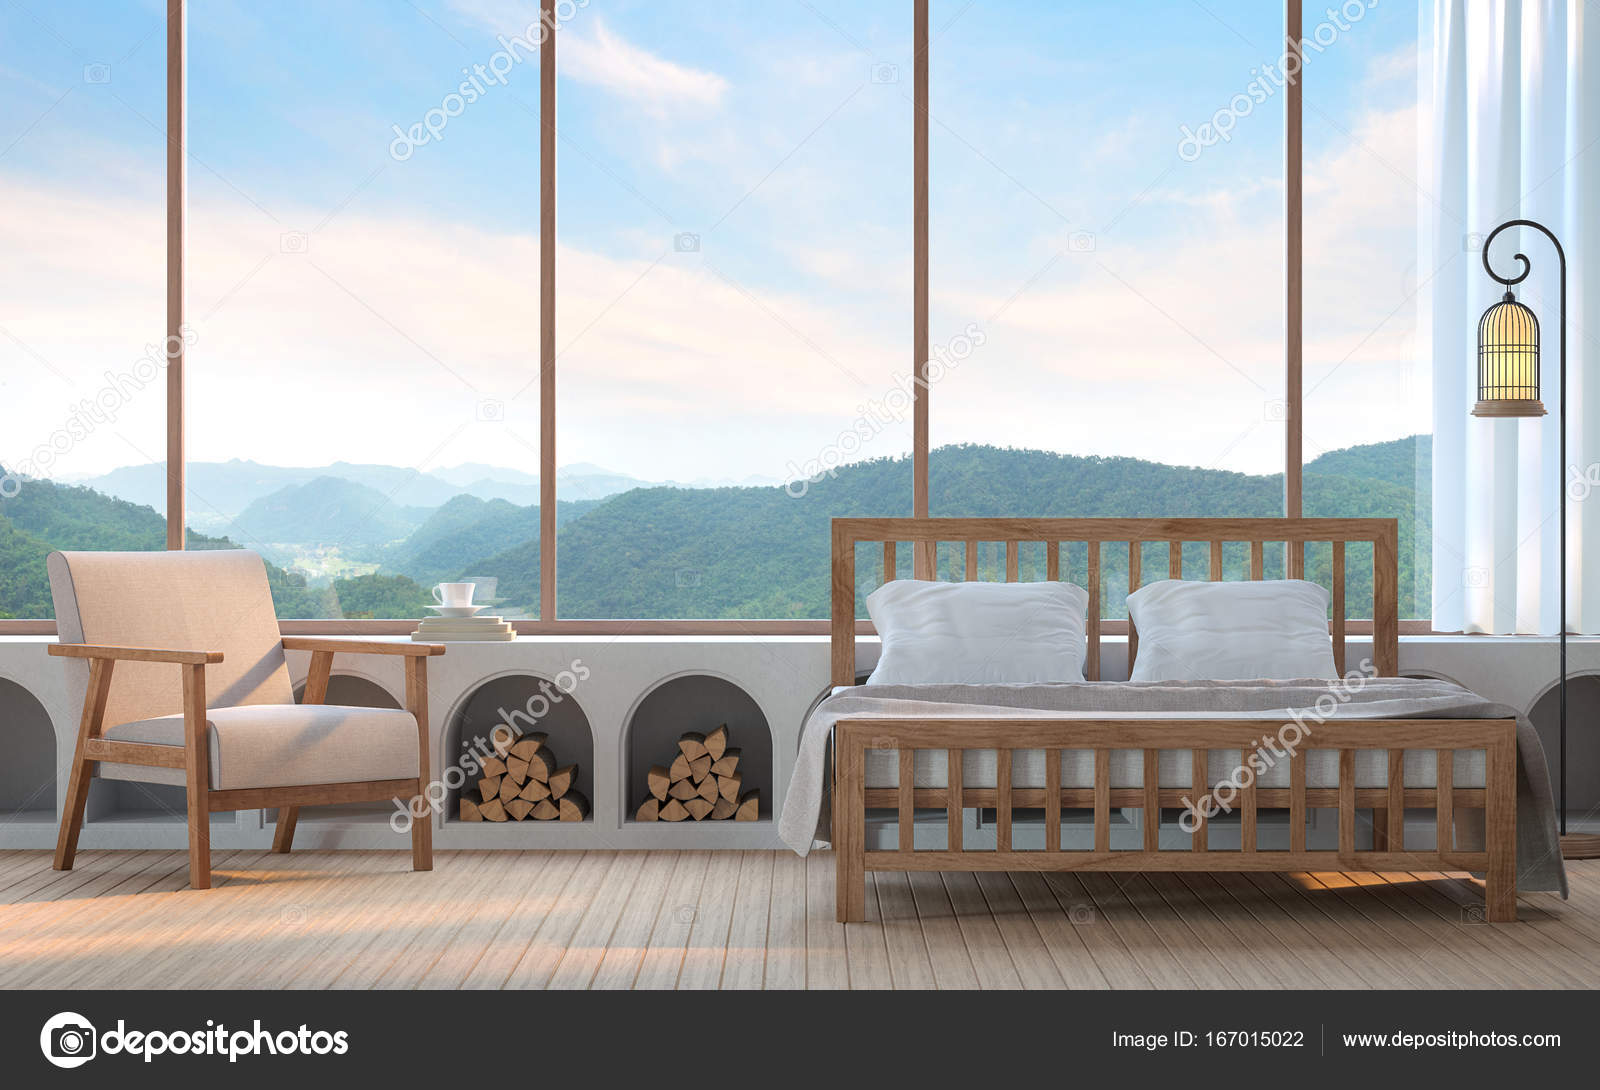 Modern Bedroom With Mountain View 3d Rendering Image. There Are Wood  Floor.Furnished With Fabric And Wooden Furniture. There Are Large Window  Overlooking ...